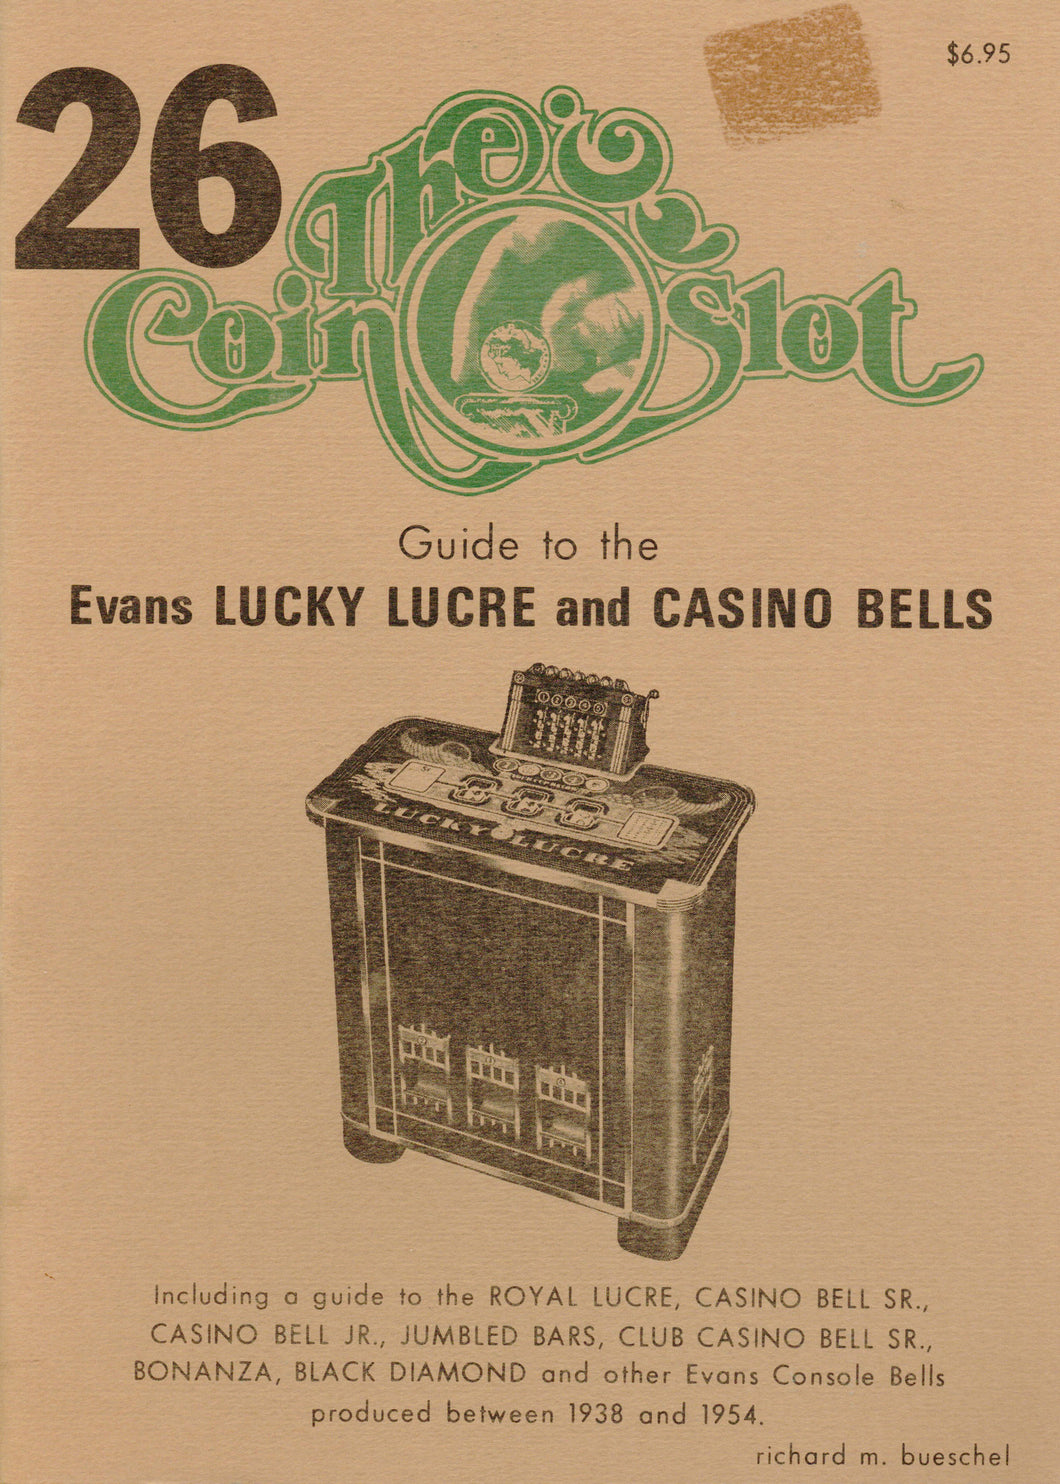 Coin Slot #26. Guide to the Evans Lucky Lucre and Casino Bells